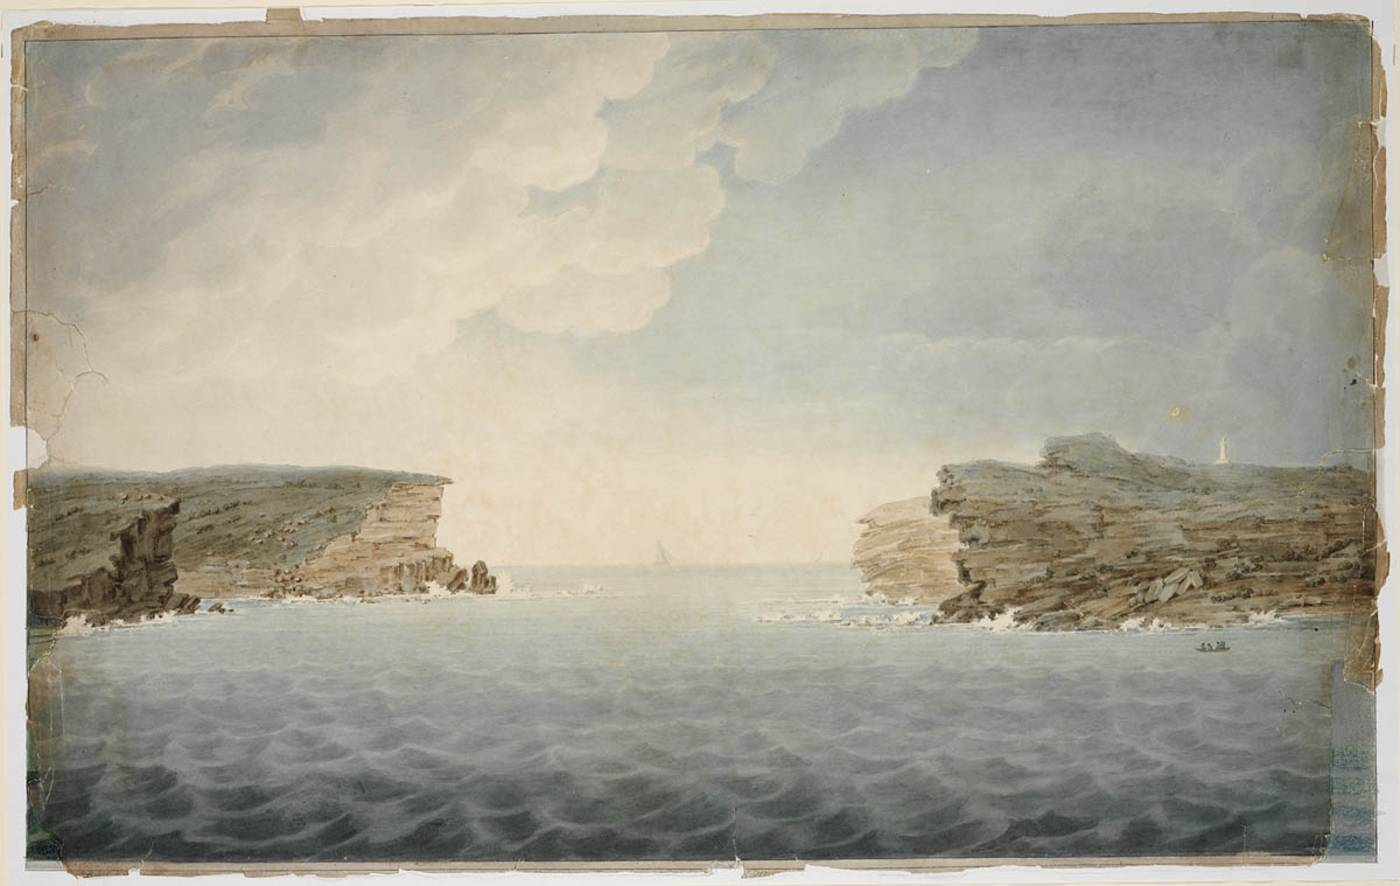 Watercolour painting of Port Jackson showing cliffs on the left and right and the sea in the foreground